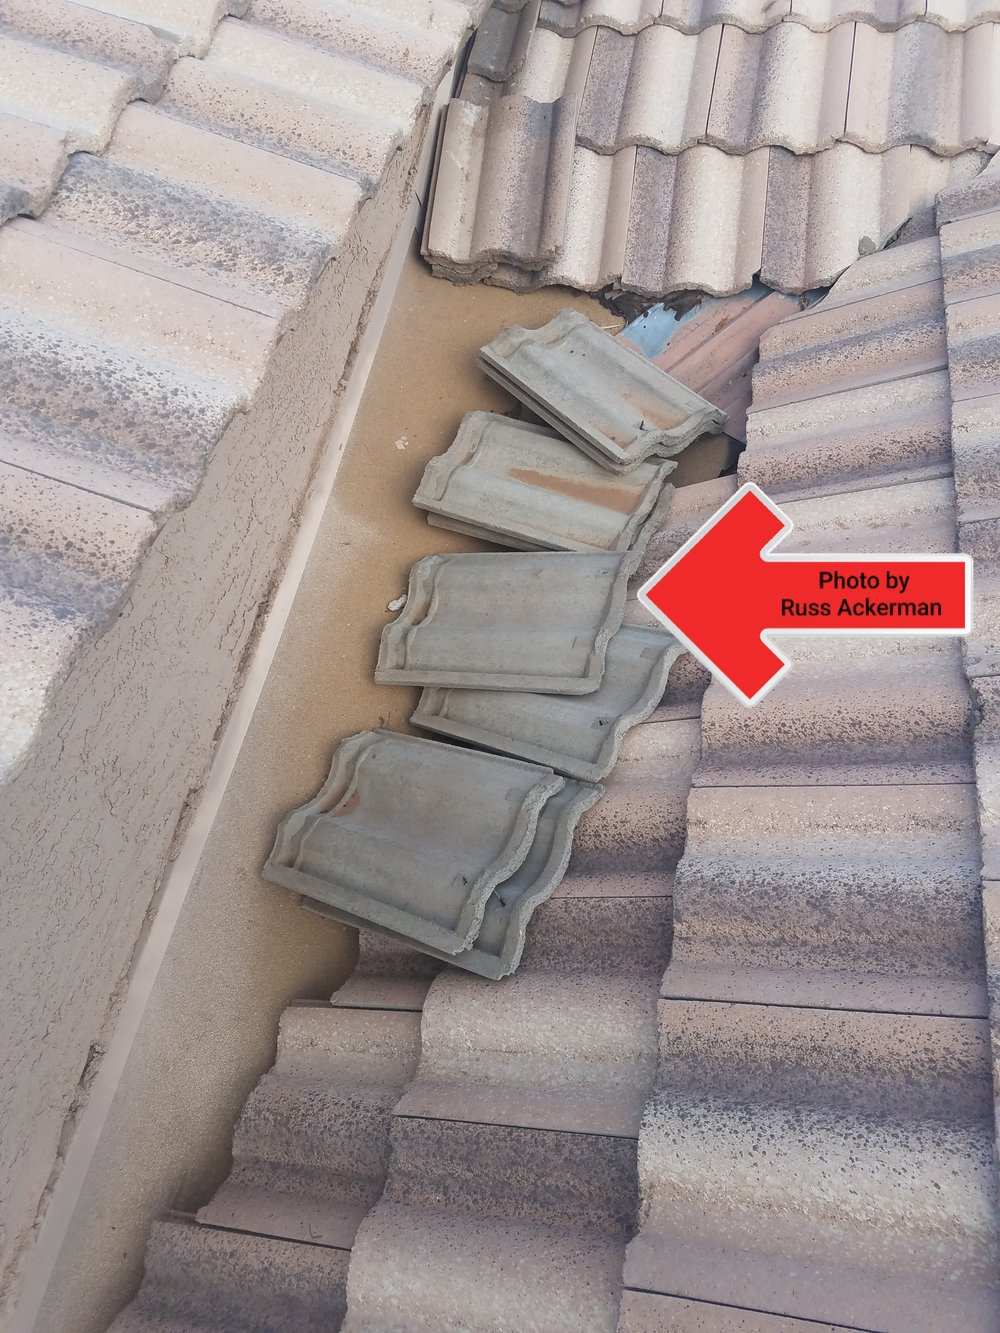 It's a great idea to have extra roof tiles, but storing them on the roof is a potential safety hazard and will cause damage to an asphalt roof valley.